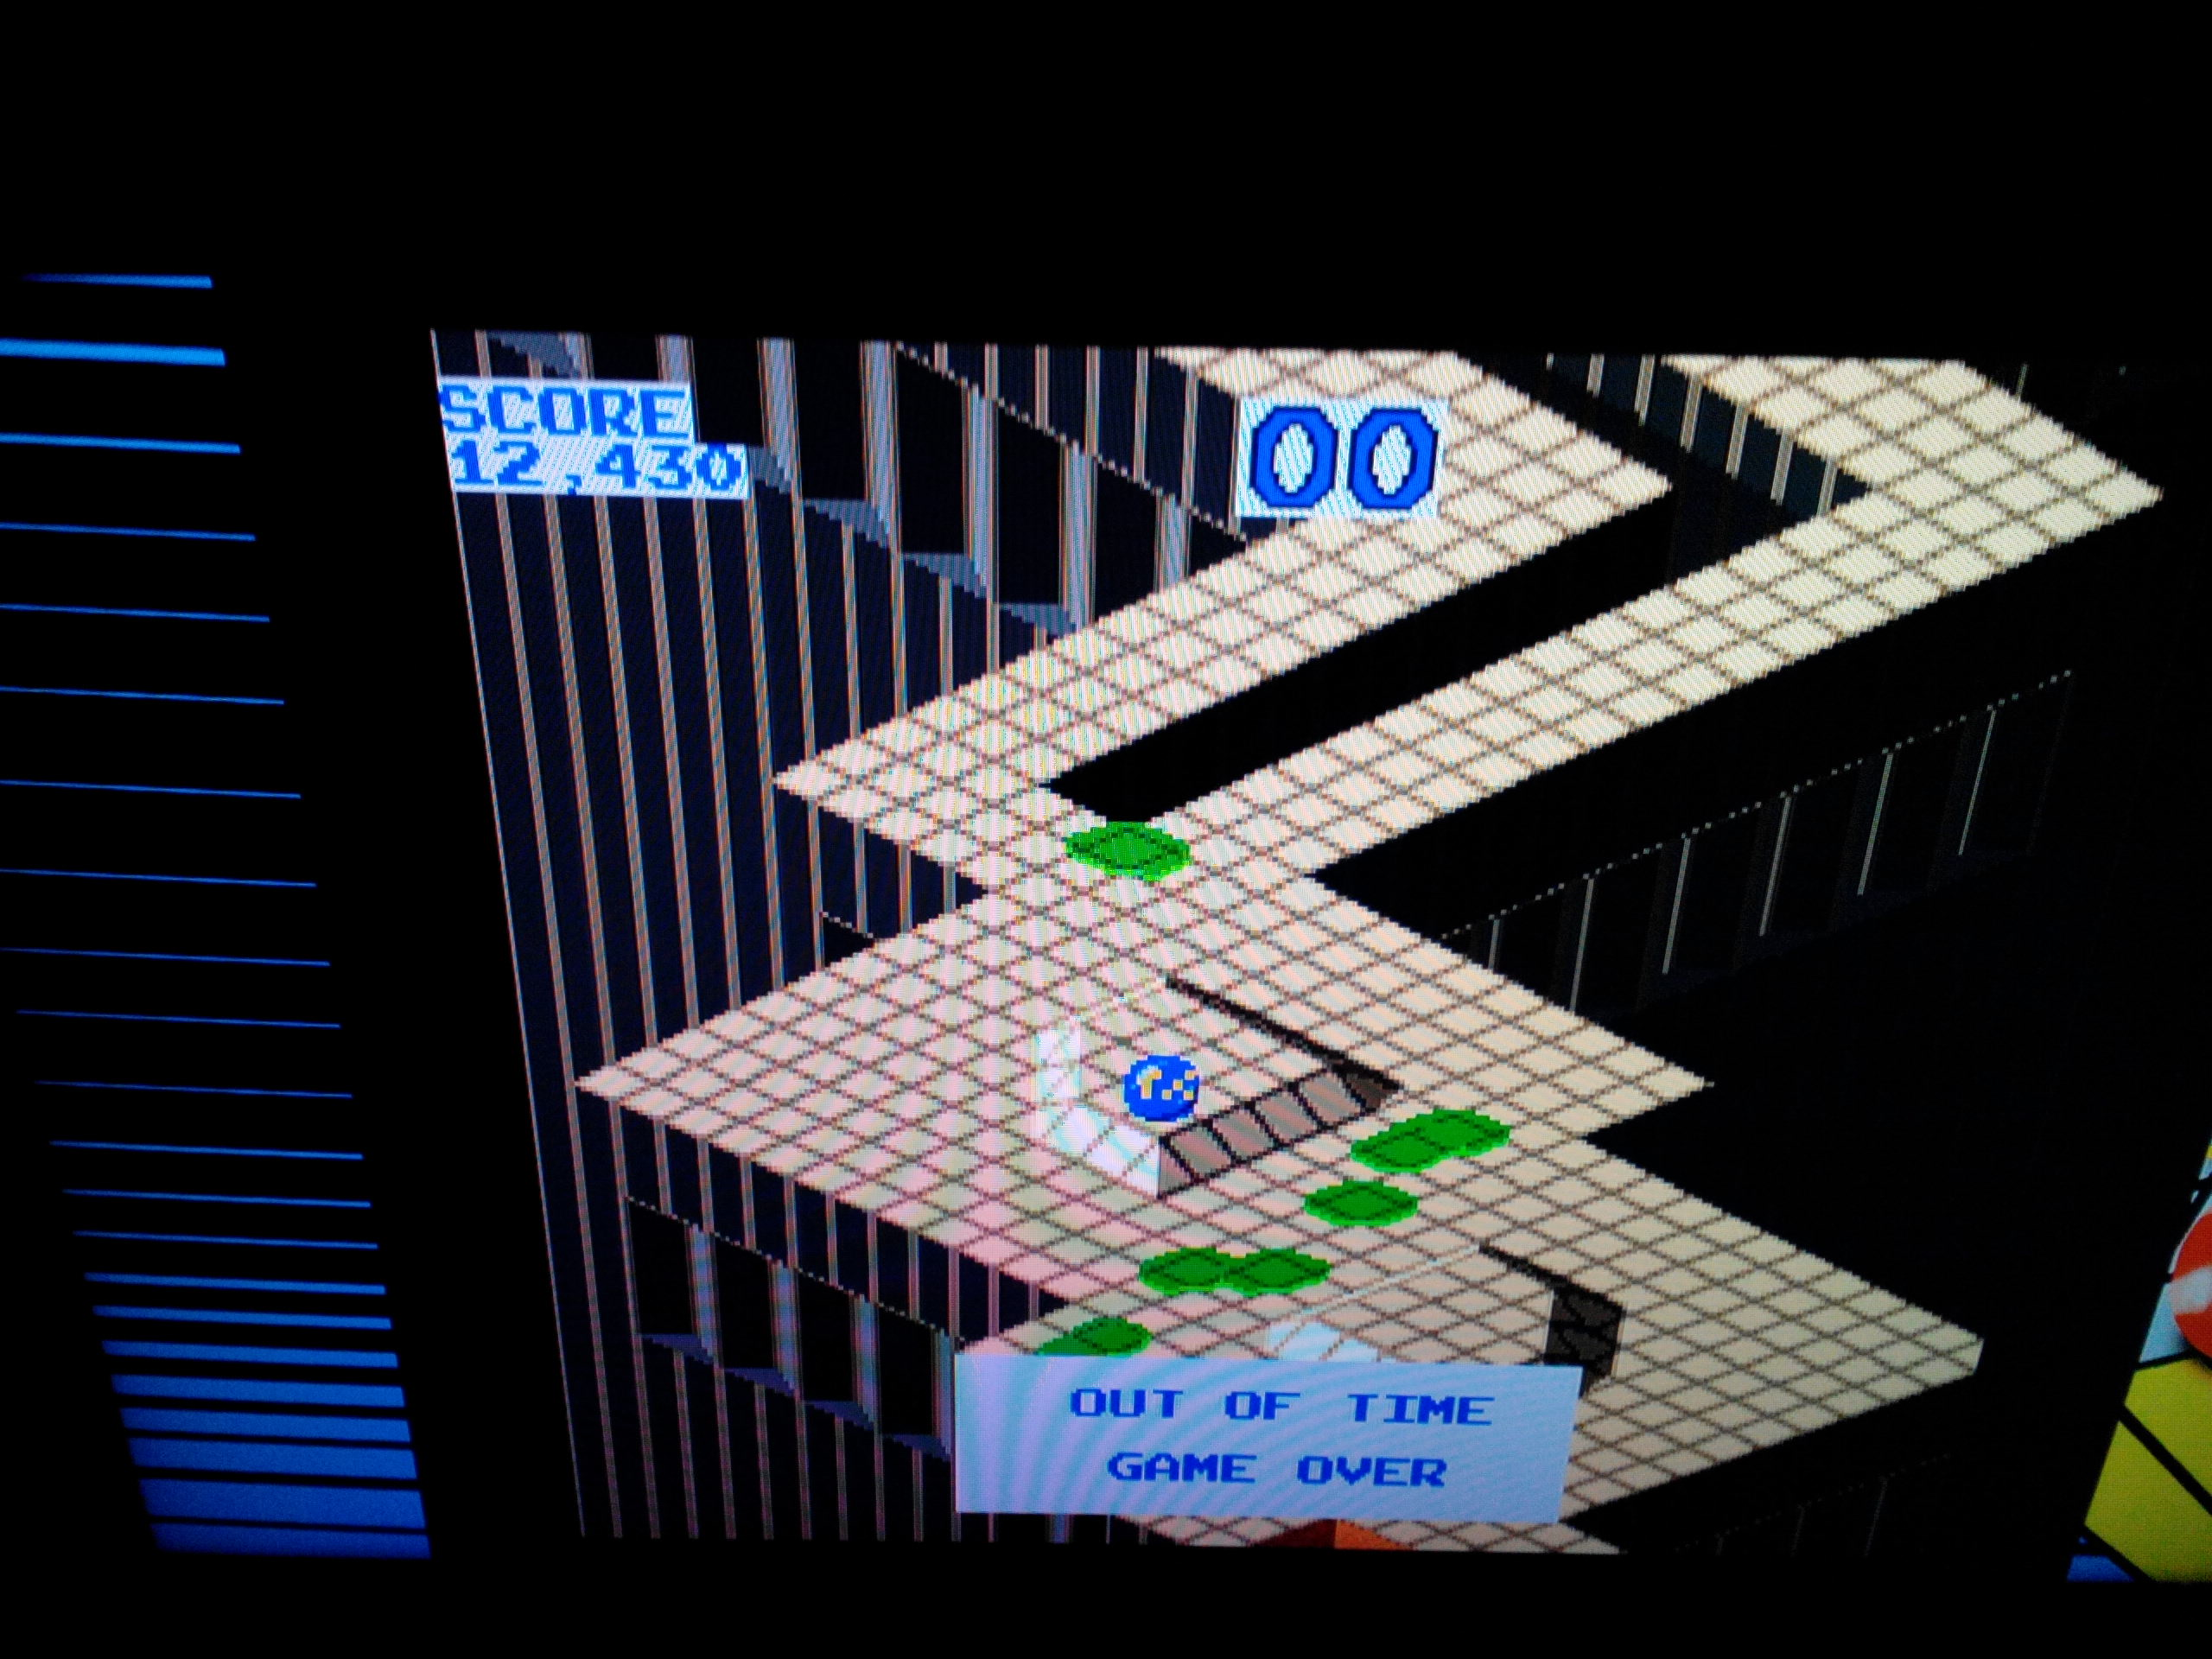 Midway Arcade Origins: Marble Madness 12,430 points